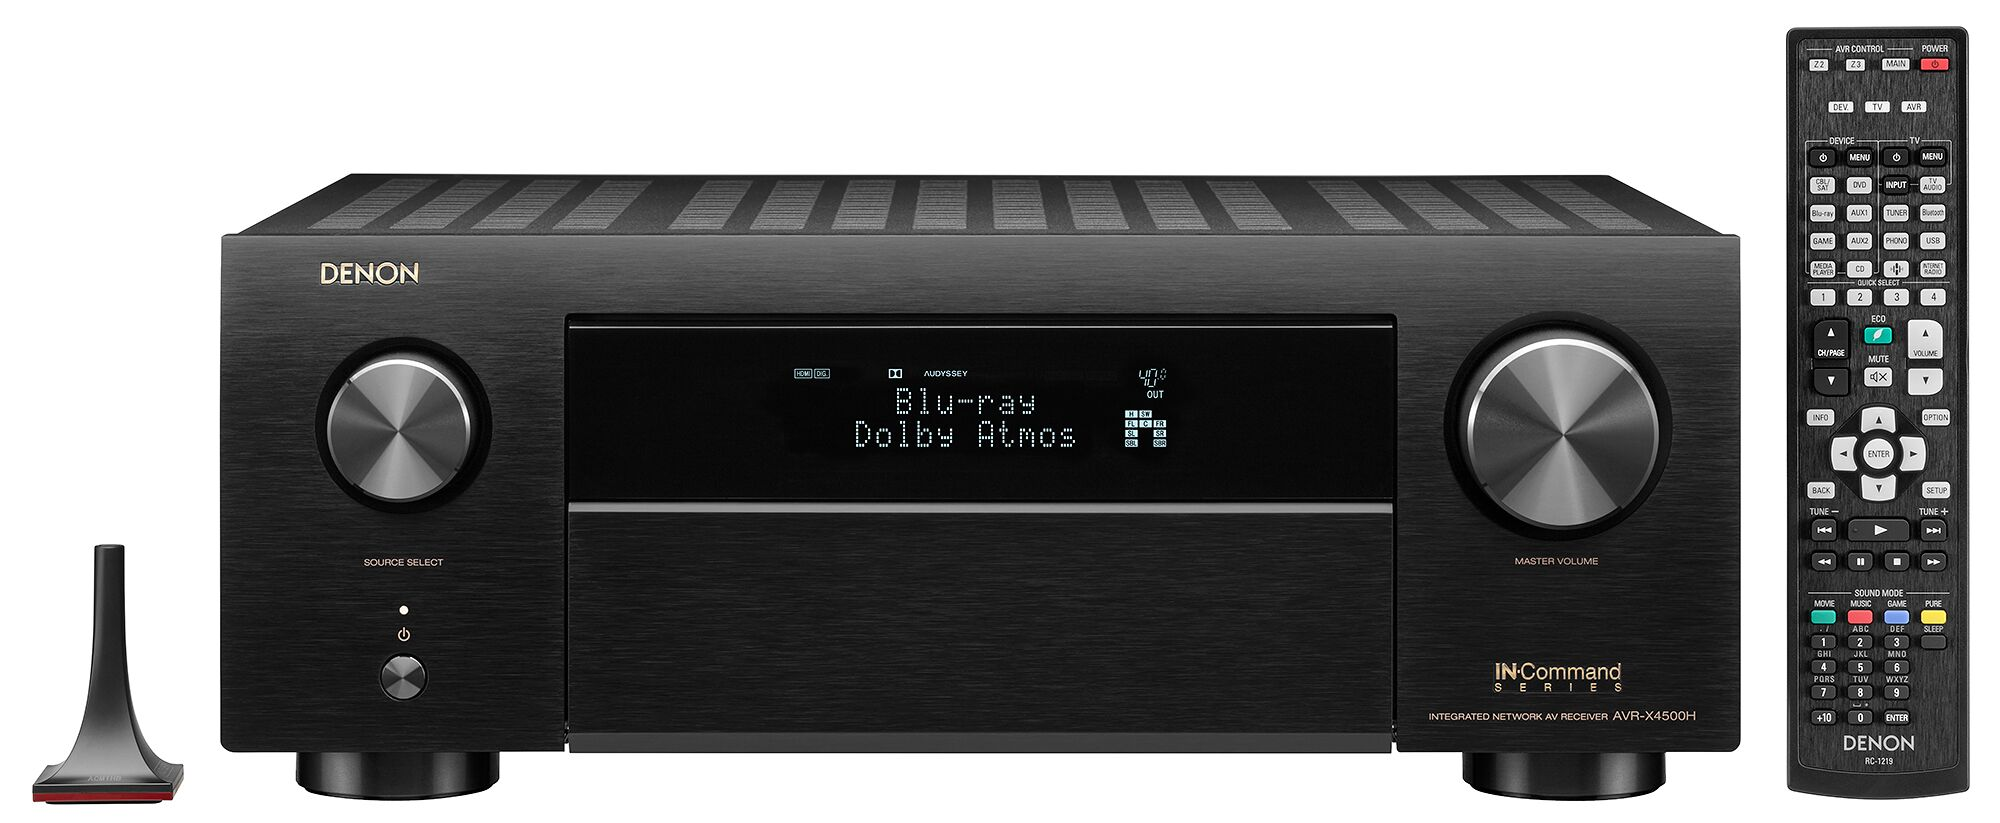 Denon AVR-X4500H 9.2 Ch High Power 4k AV Receiver with Amazon Alexa Voice Control by Denon